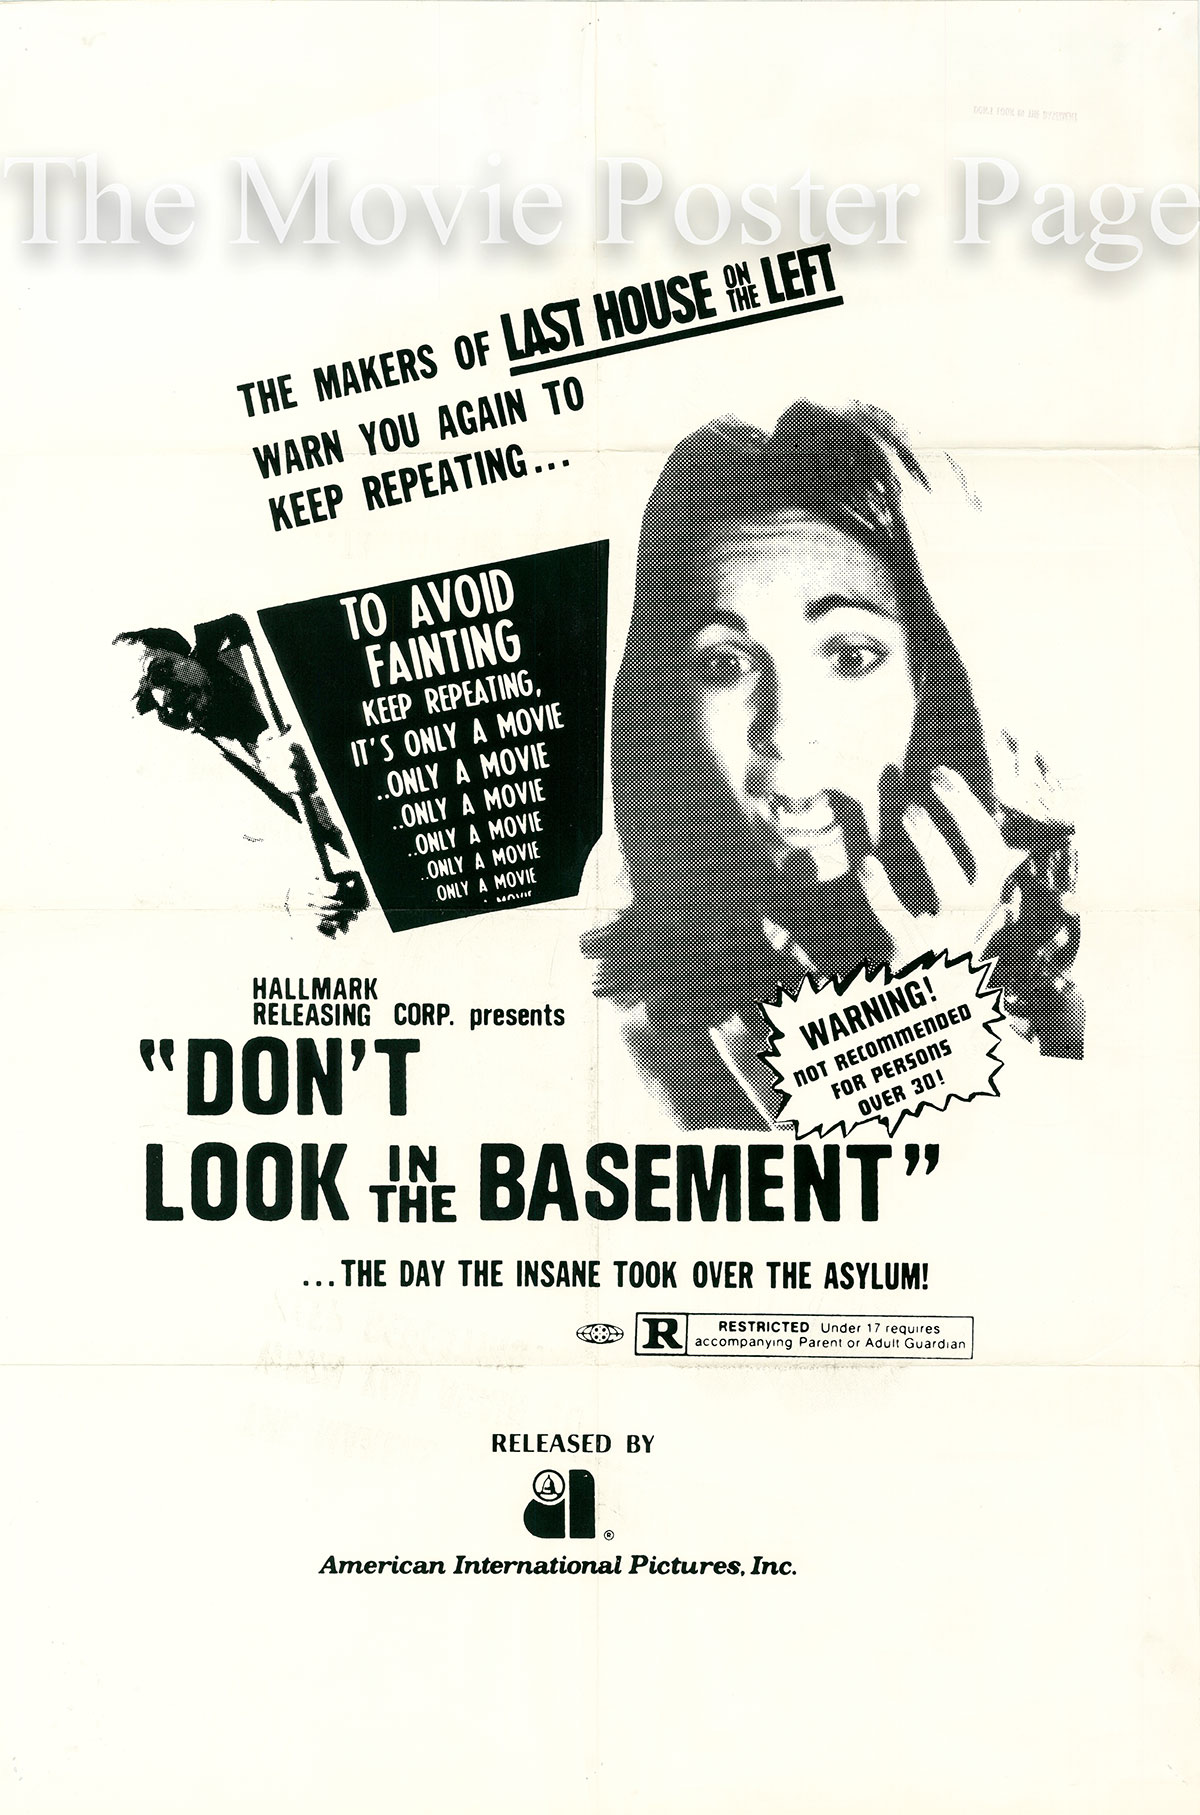 Pictured is a US rerelease promotional poster for the 1973 S.F.Brownrigg film The Forgotten with the rerelease name Don't Look in the Basement, starring Bill McGhee.